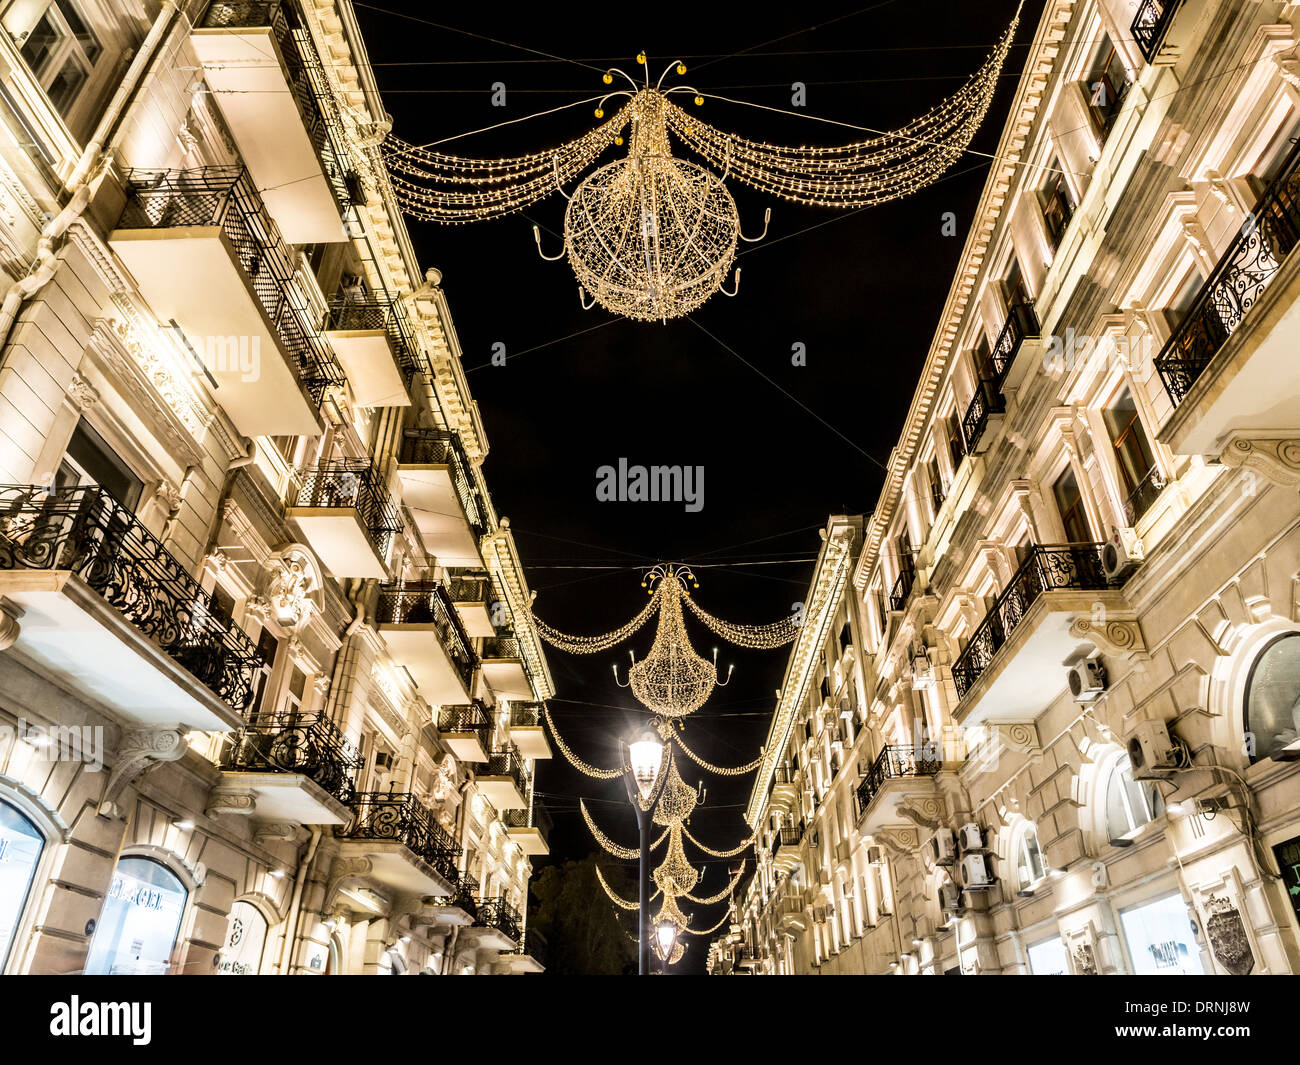 Nizami street in the center of Baku, Azarbaijan, illuminated by night. Stock Photo